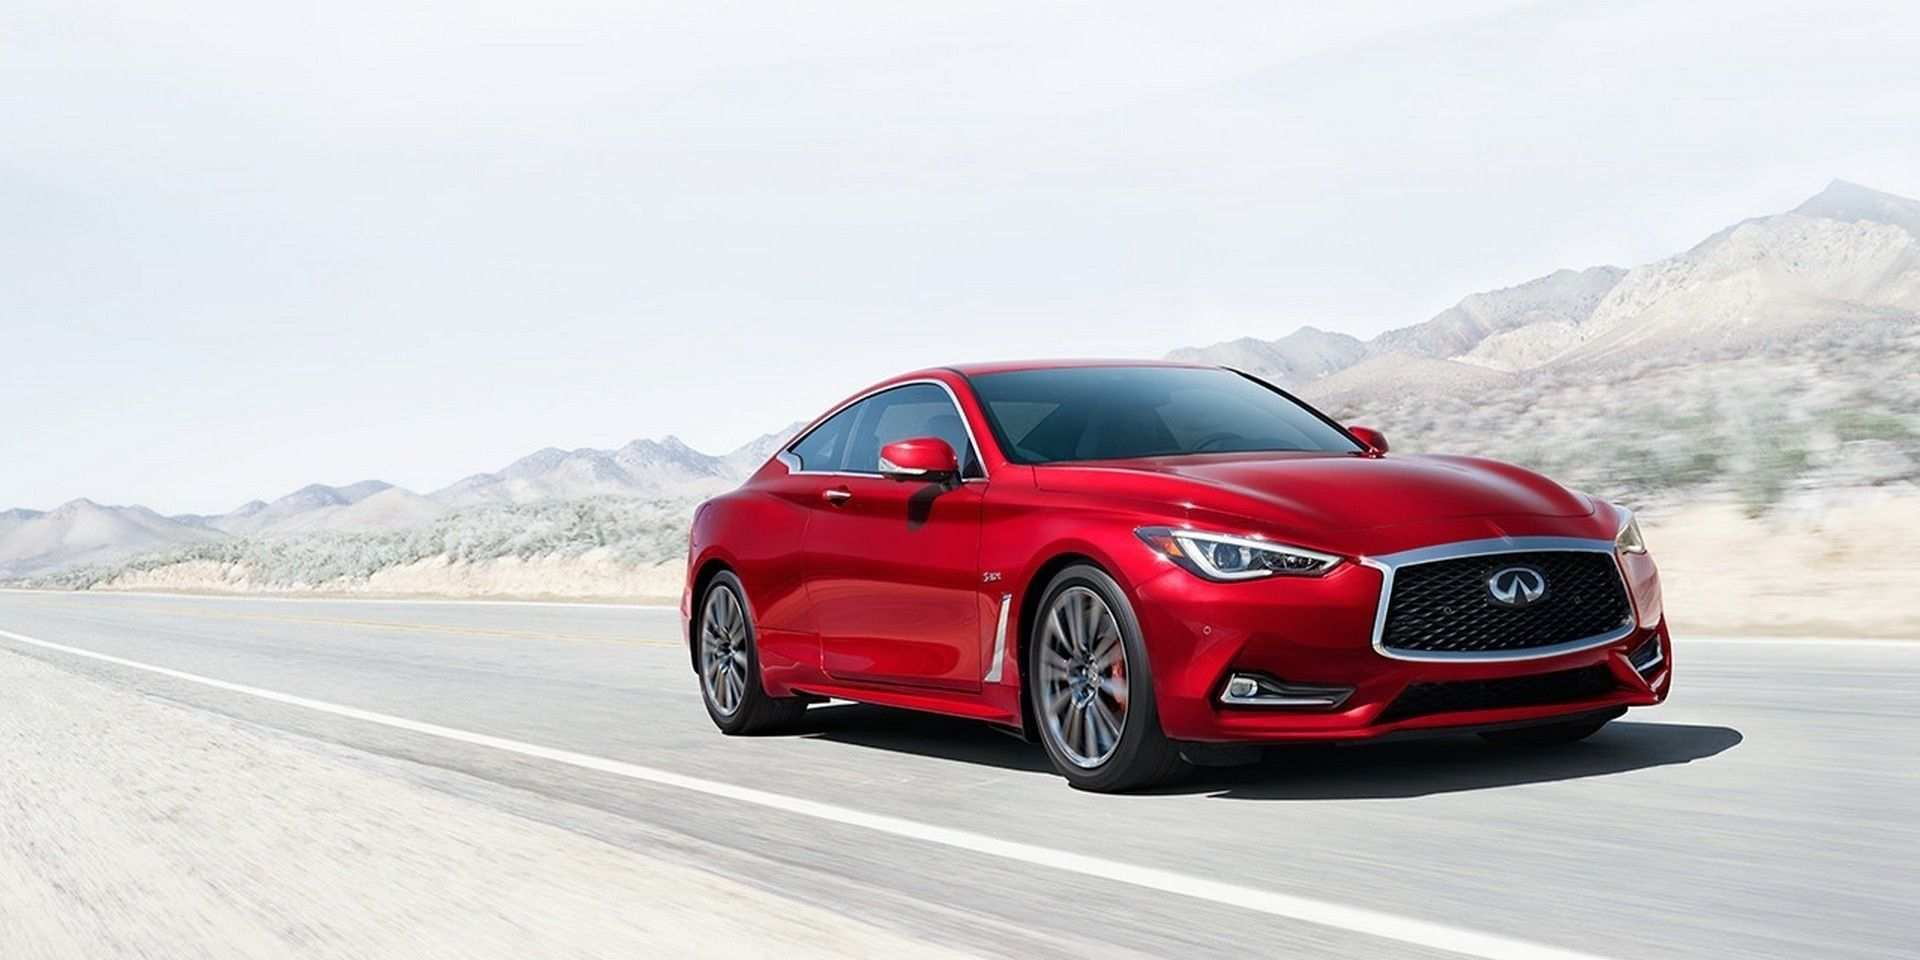 11 New 2020 Infiniti G Review by 2020 Infiniti G